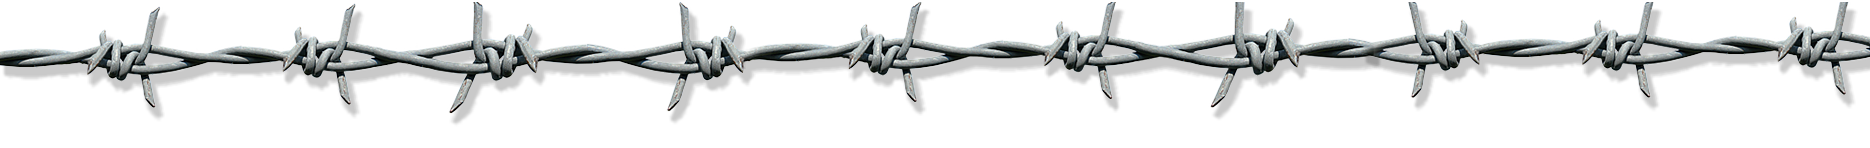 Barbed_wire.png